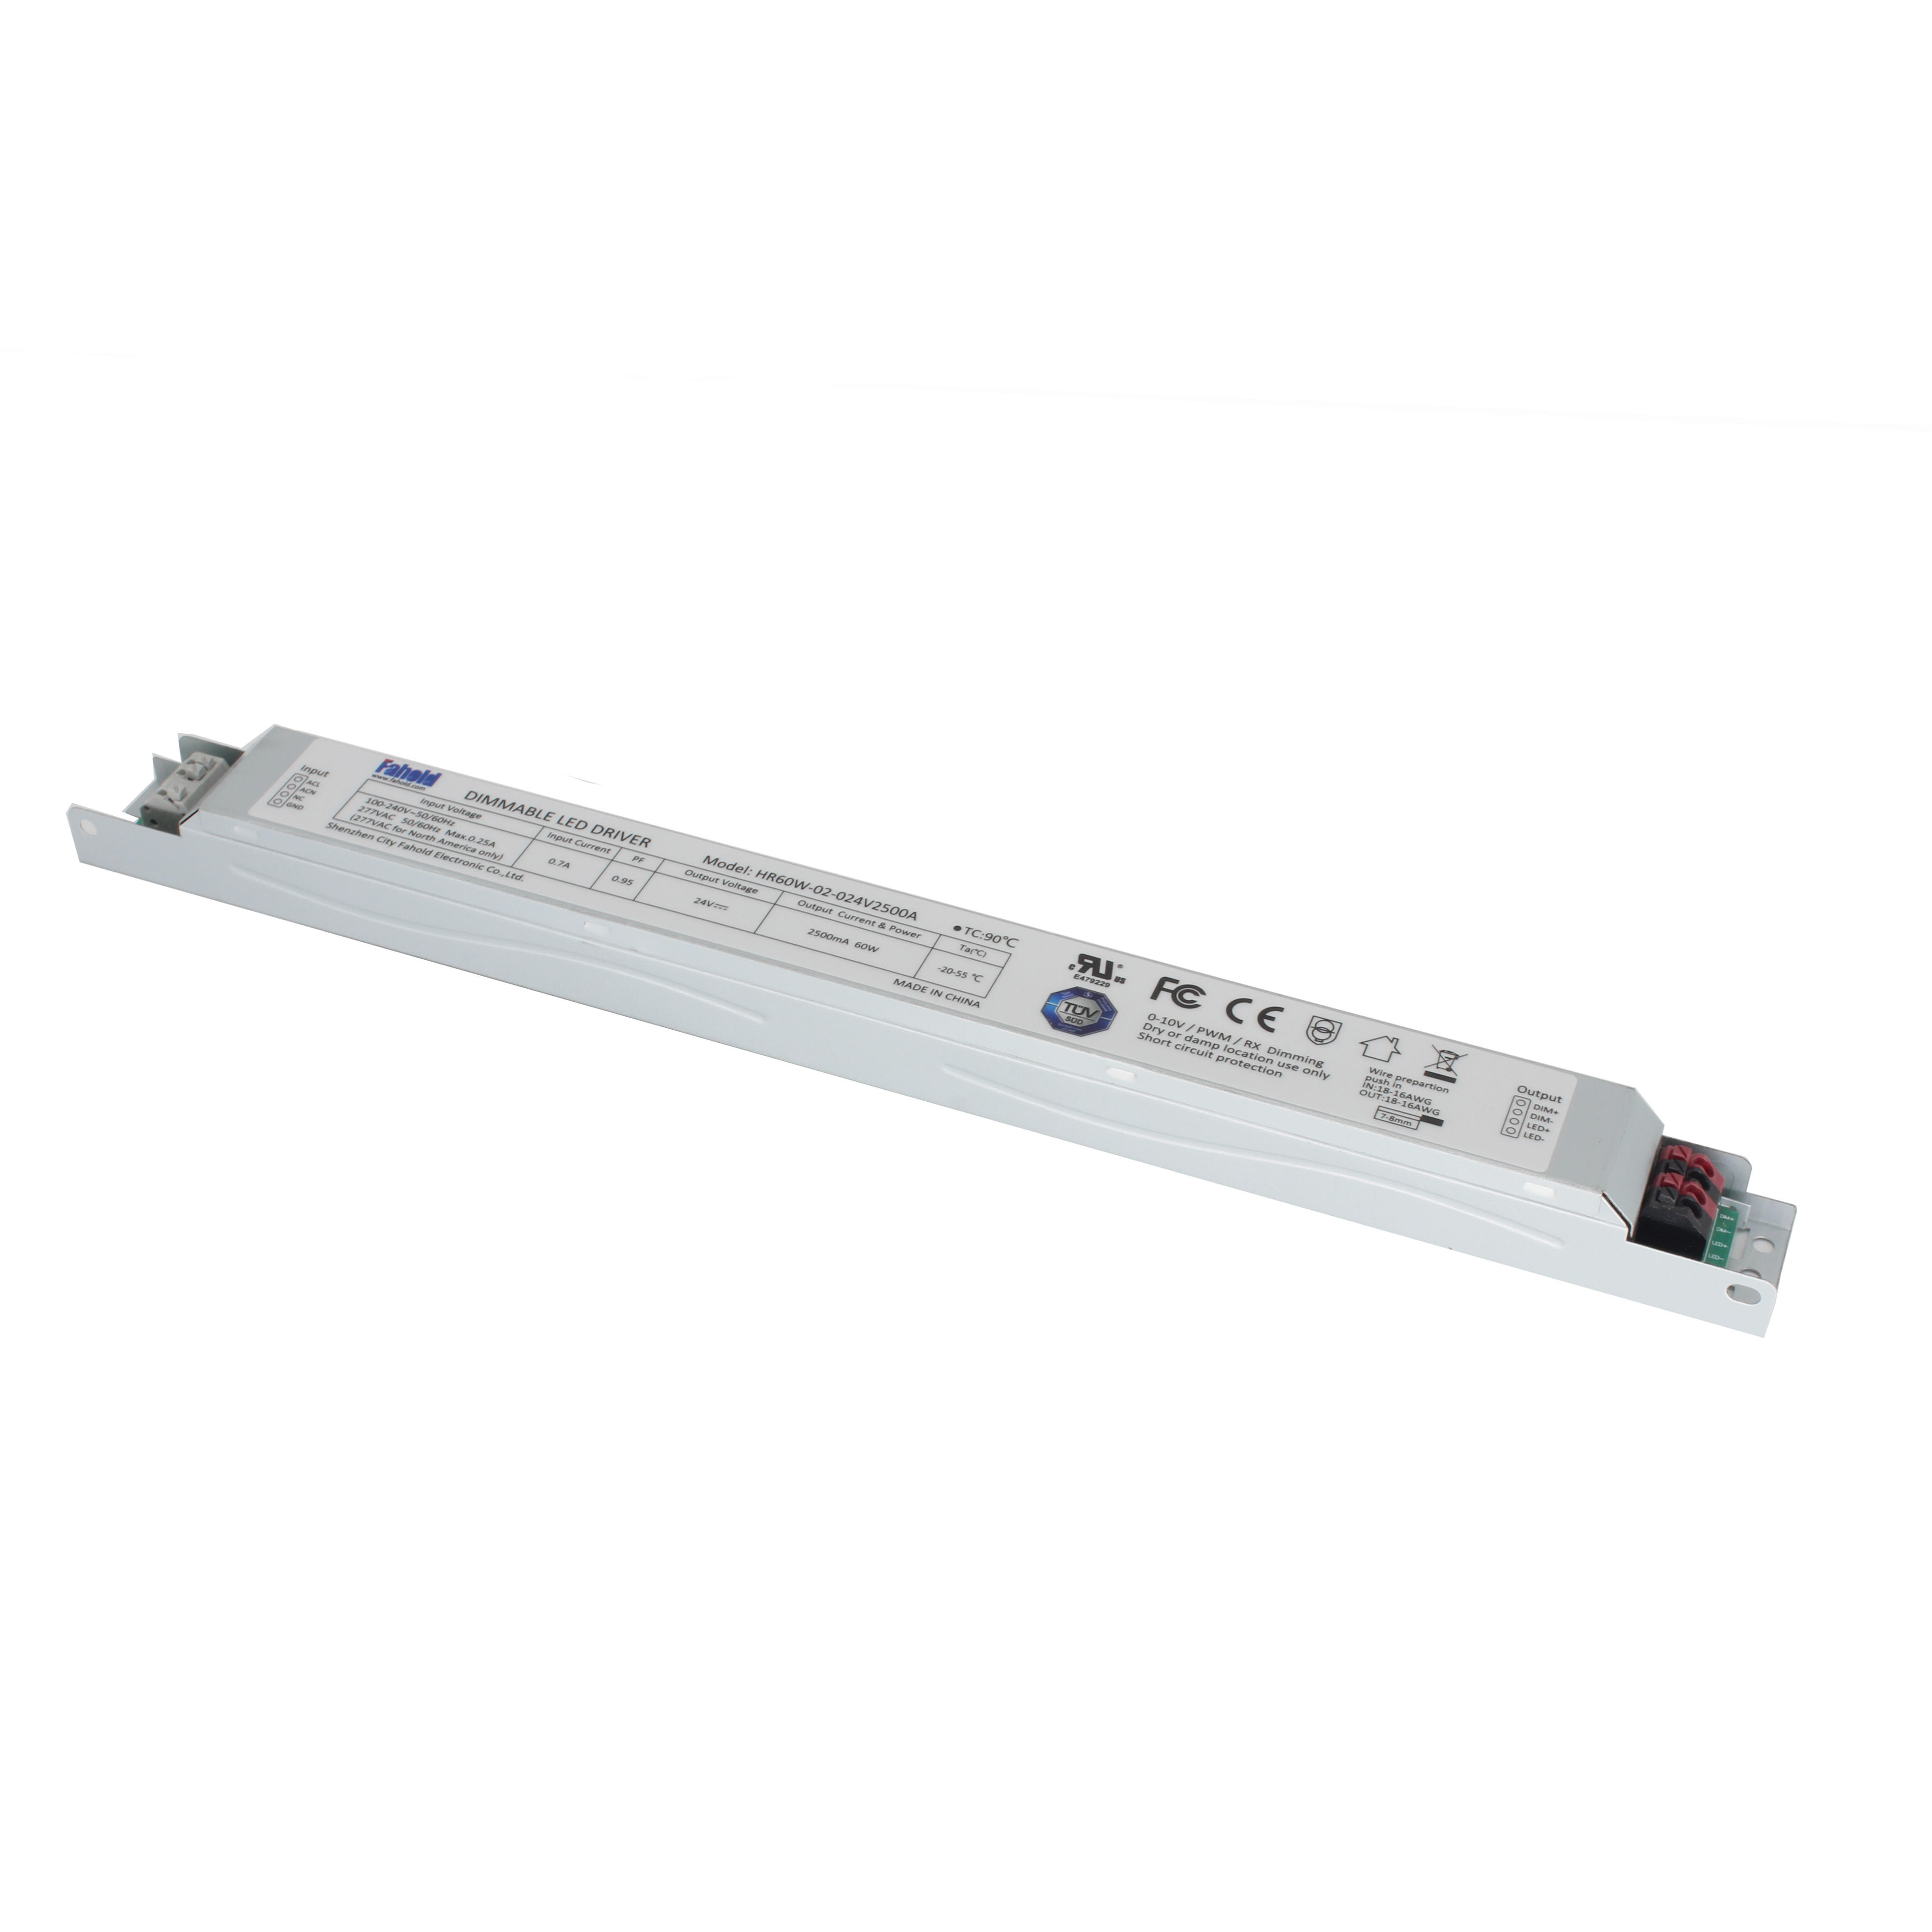 100-277V 12V/24VDC output 60W slim internal led strip power supply